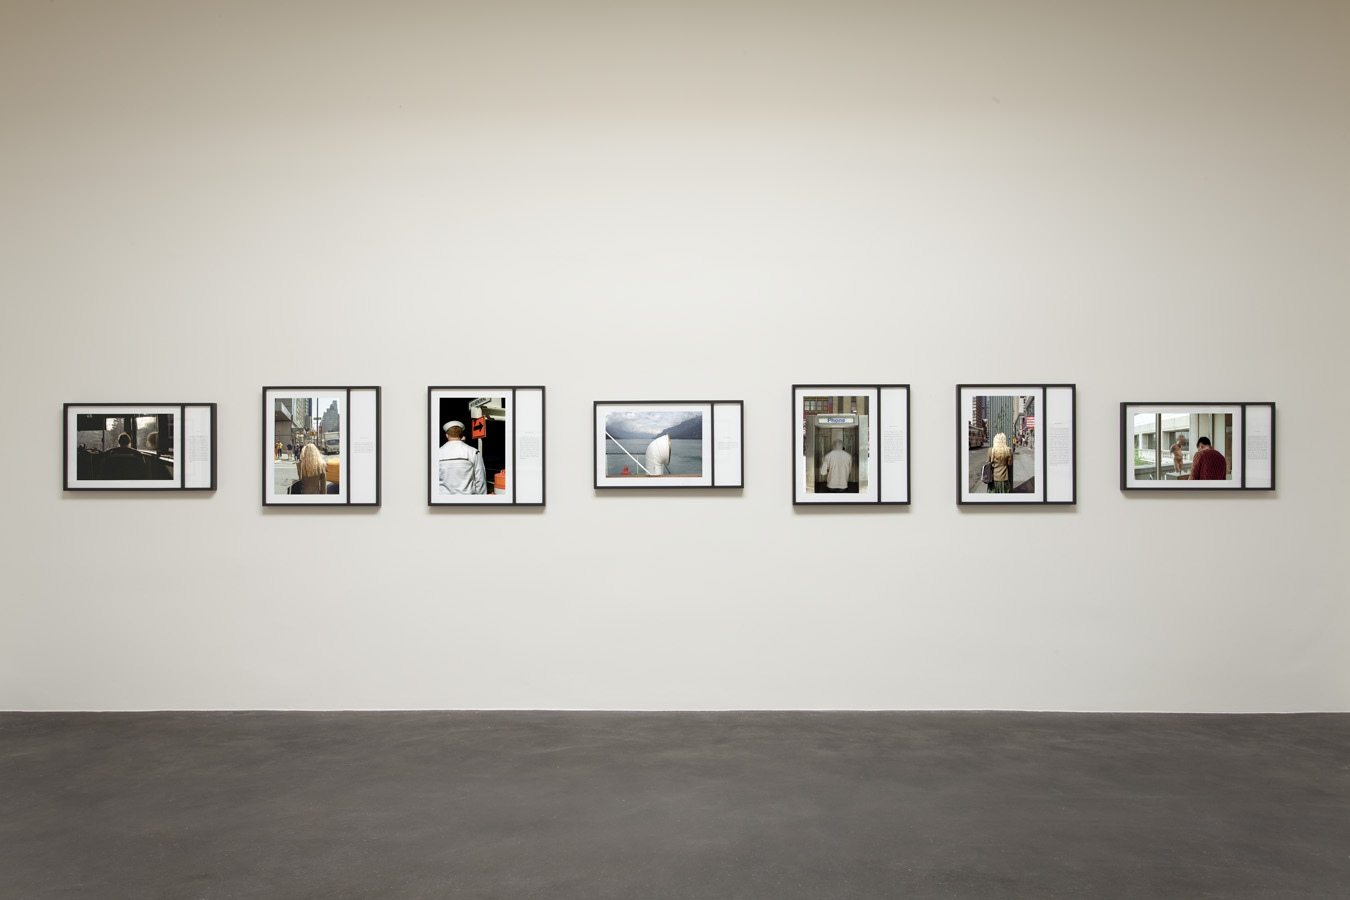 Installation view,Teju Cole: Blind Spot, Lannan Foundation. Photo: Addison Doty